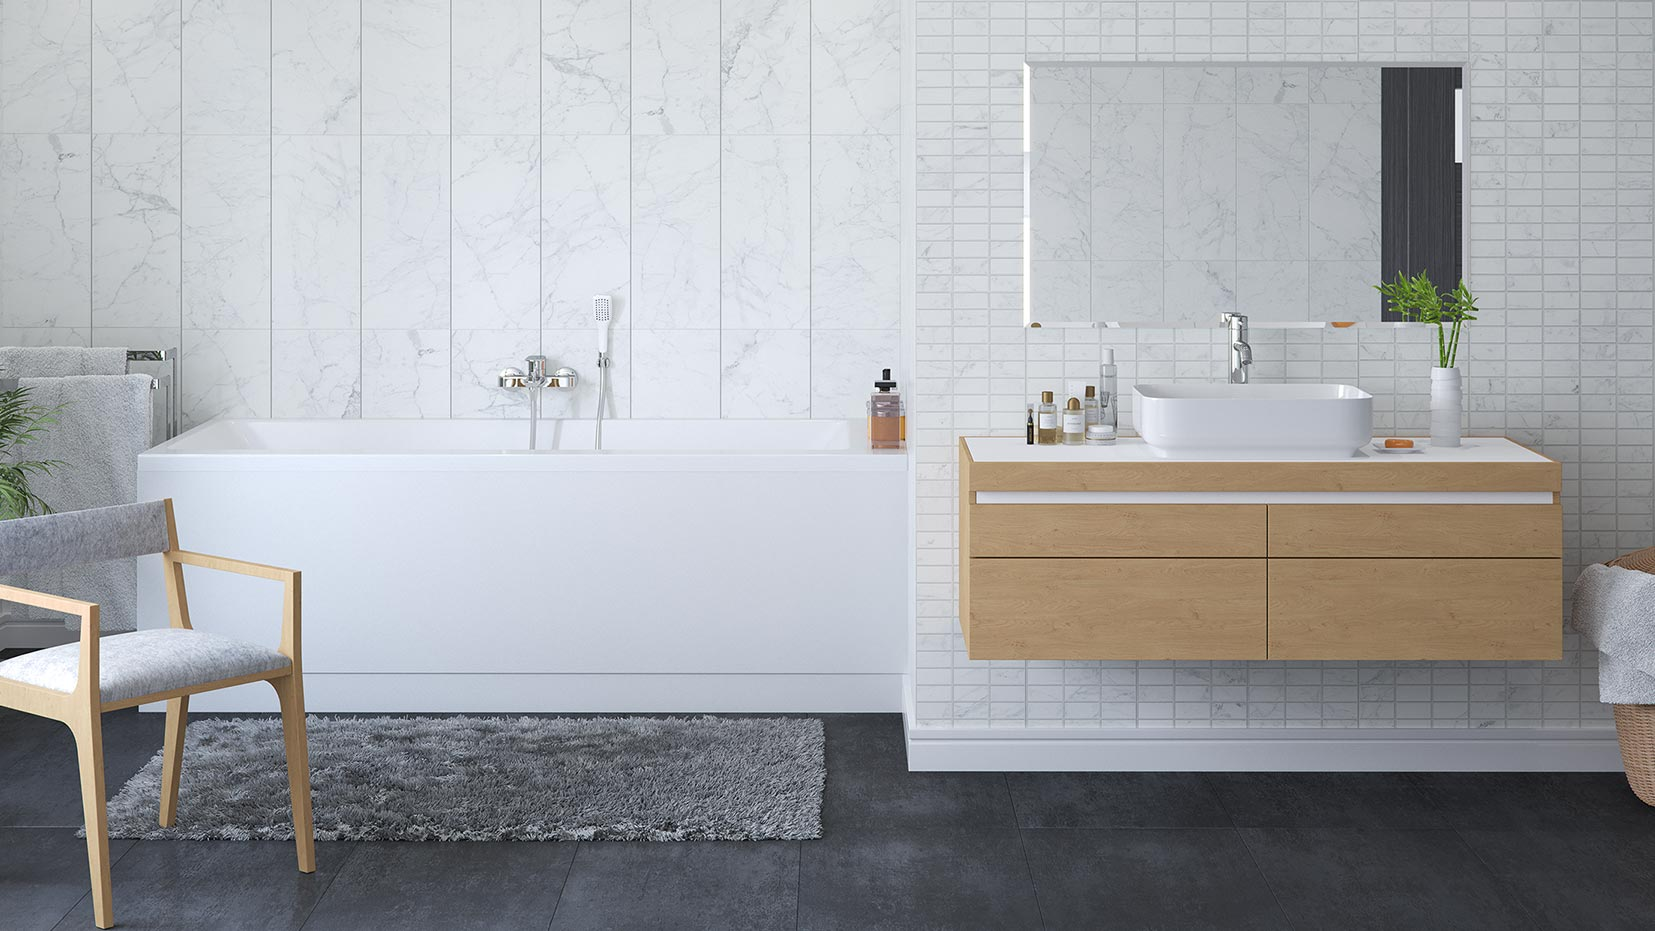 Carrara Tile Effect Decor